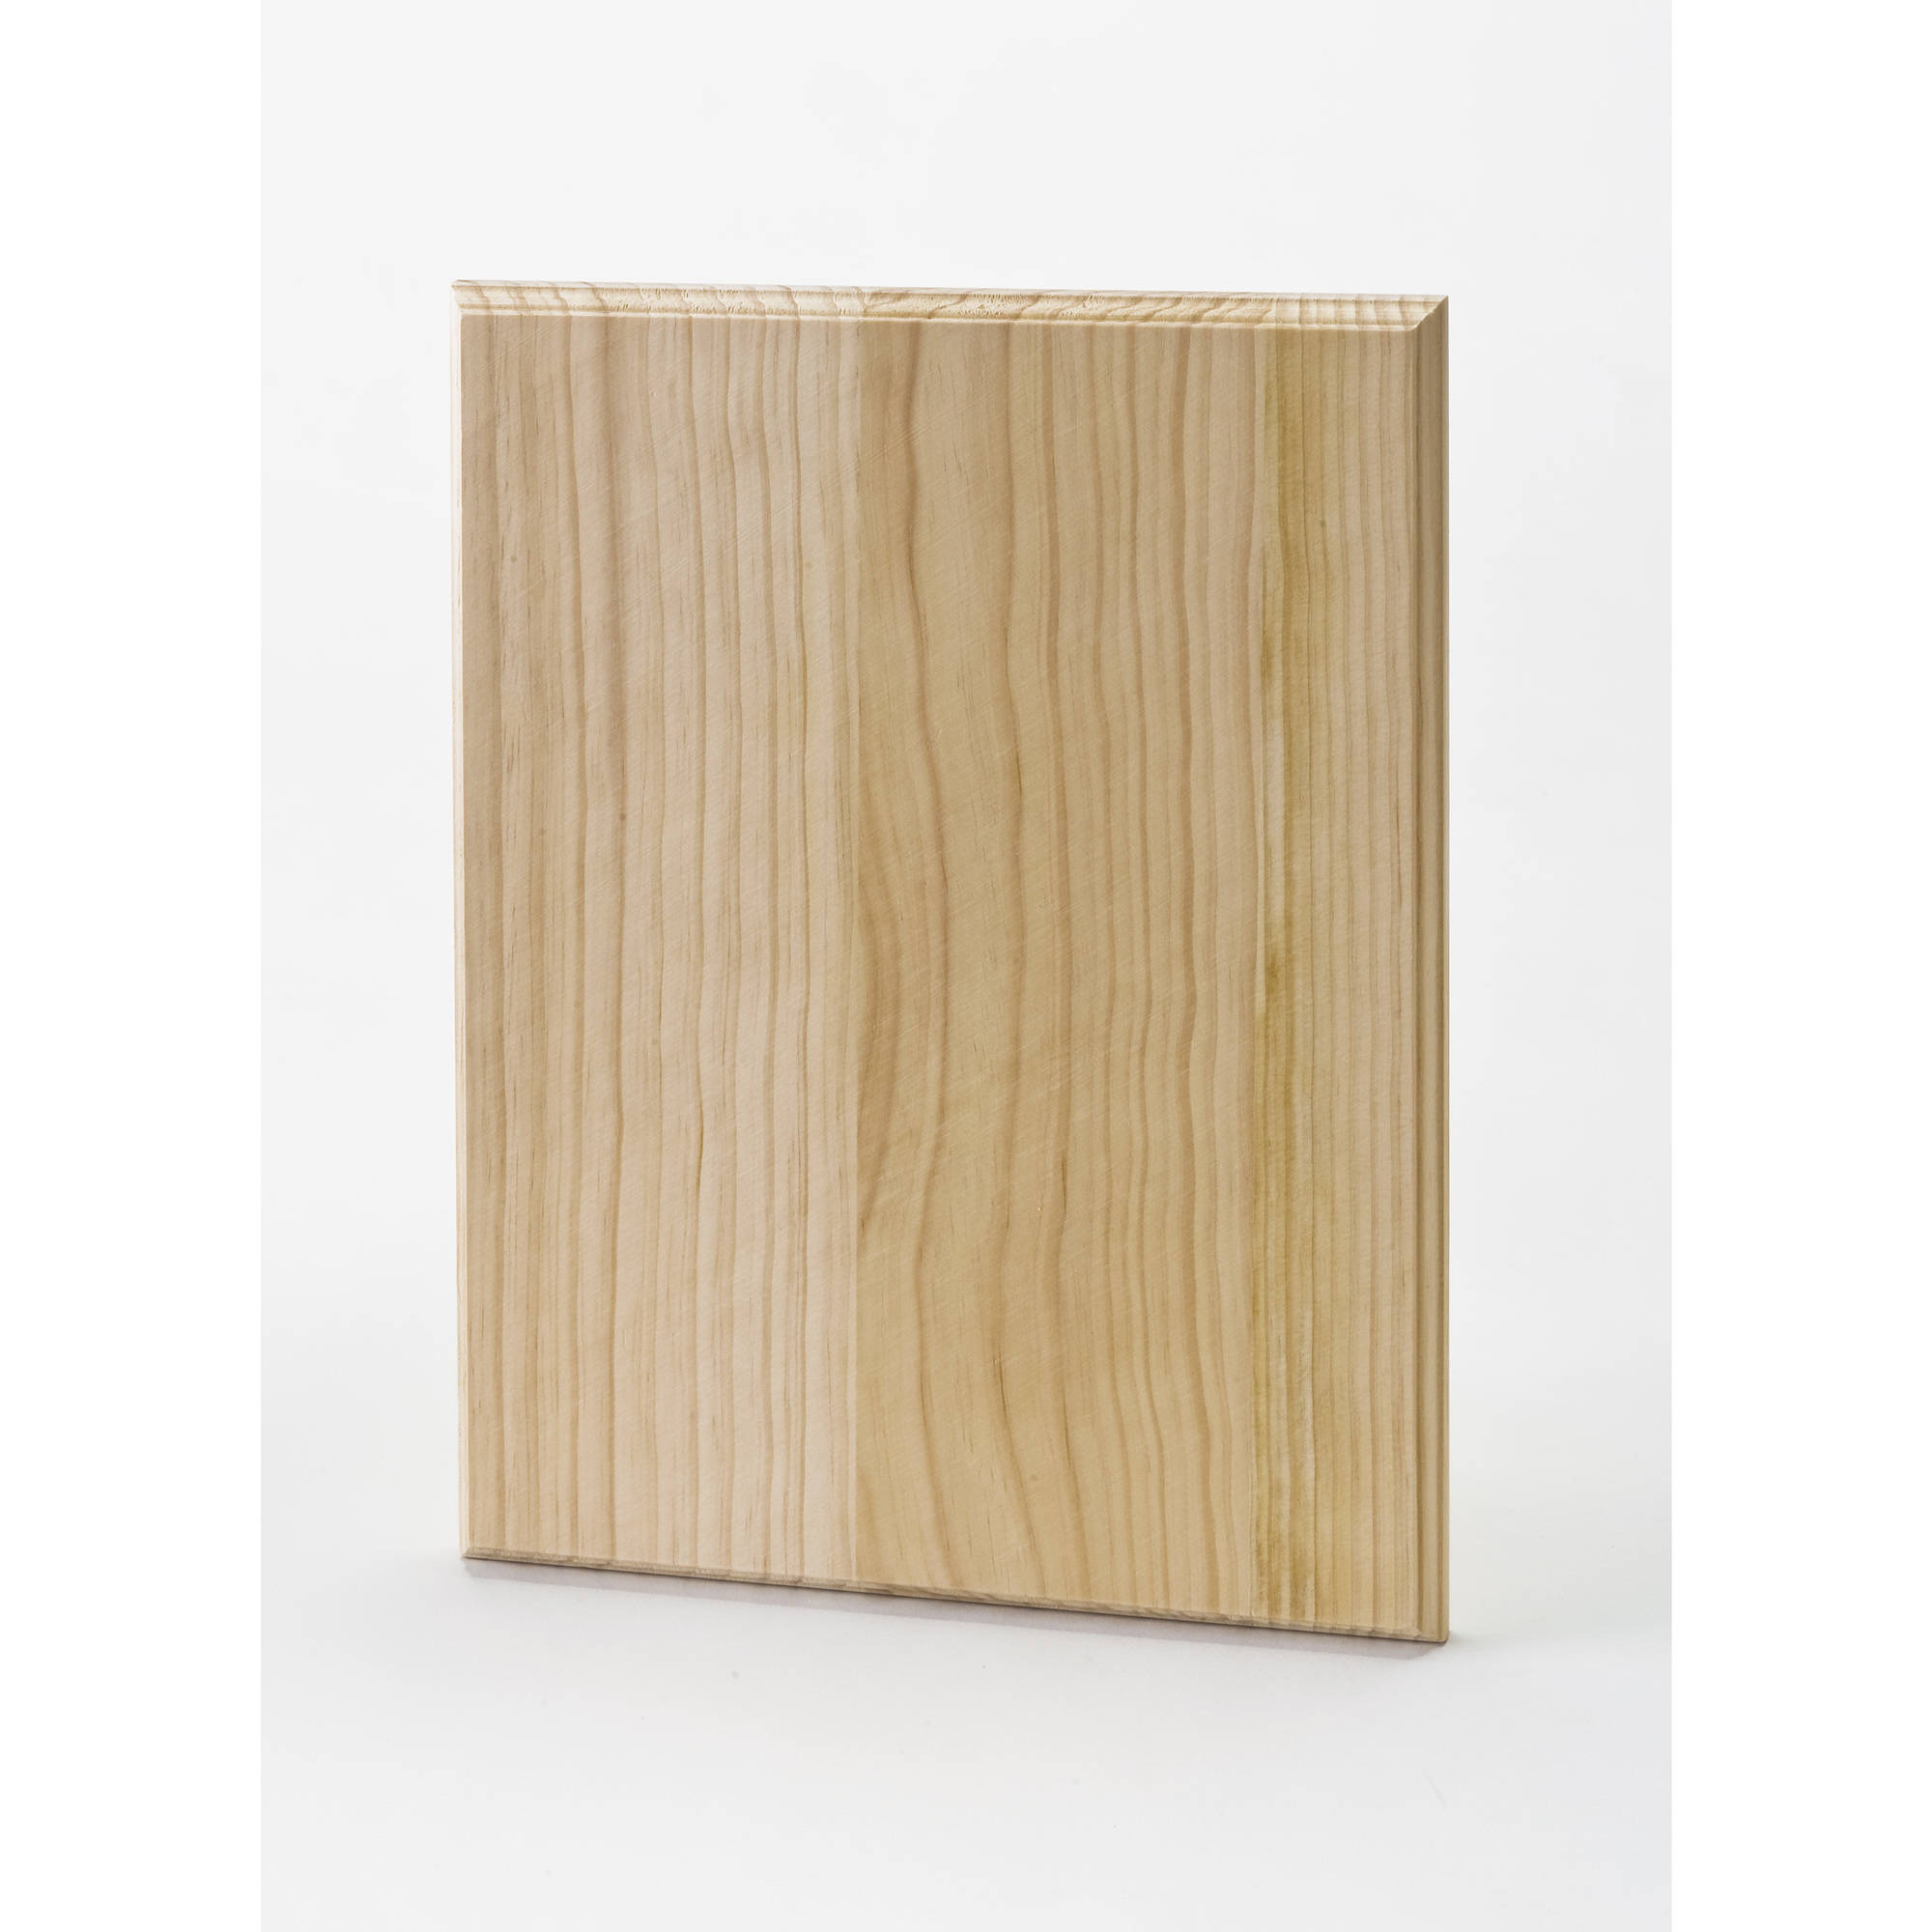 "Plaid Large Rectangle Wood Plaque, 12"" x 9"""